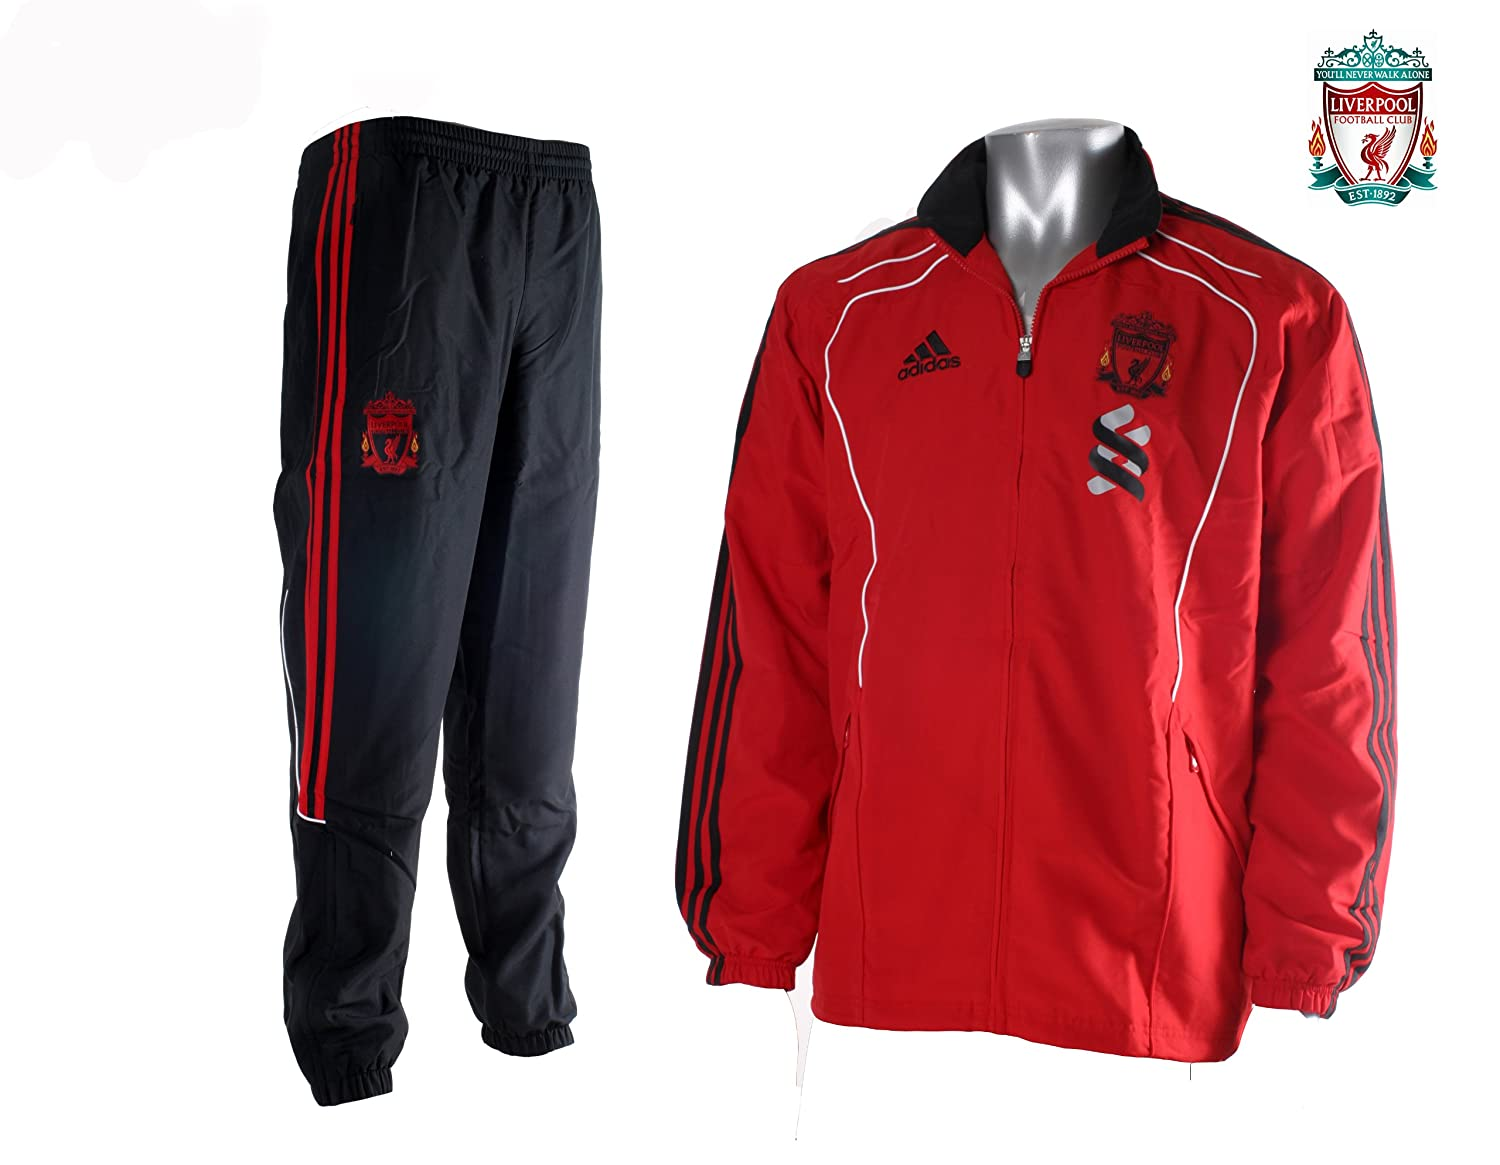 d2924d1f246f ADIDAS LIVERPOOL TRACKSUIT ADULTS NEW PRESENTATION SUIT SIZE LARGE   Amazon.co.uk  Clothing